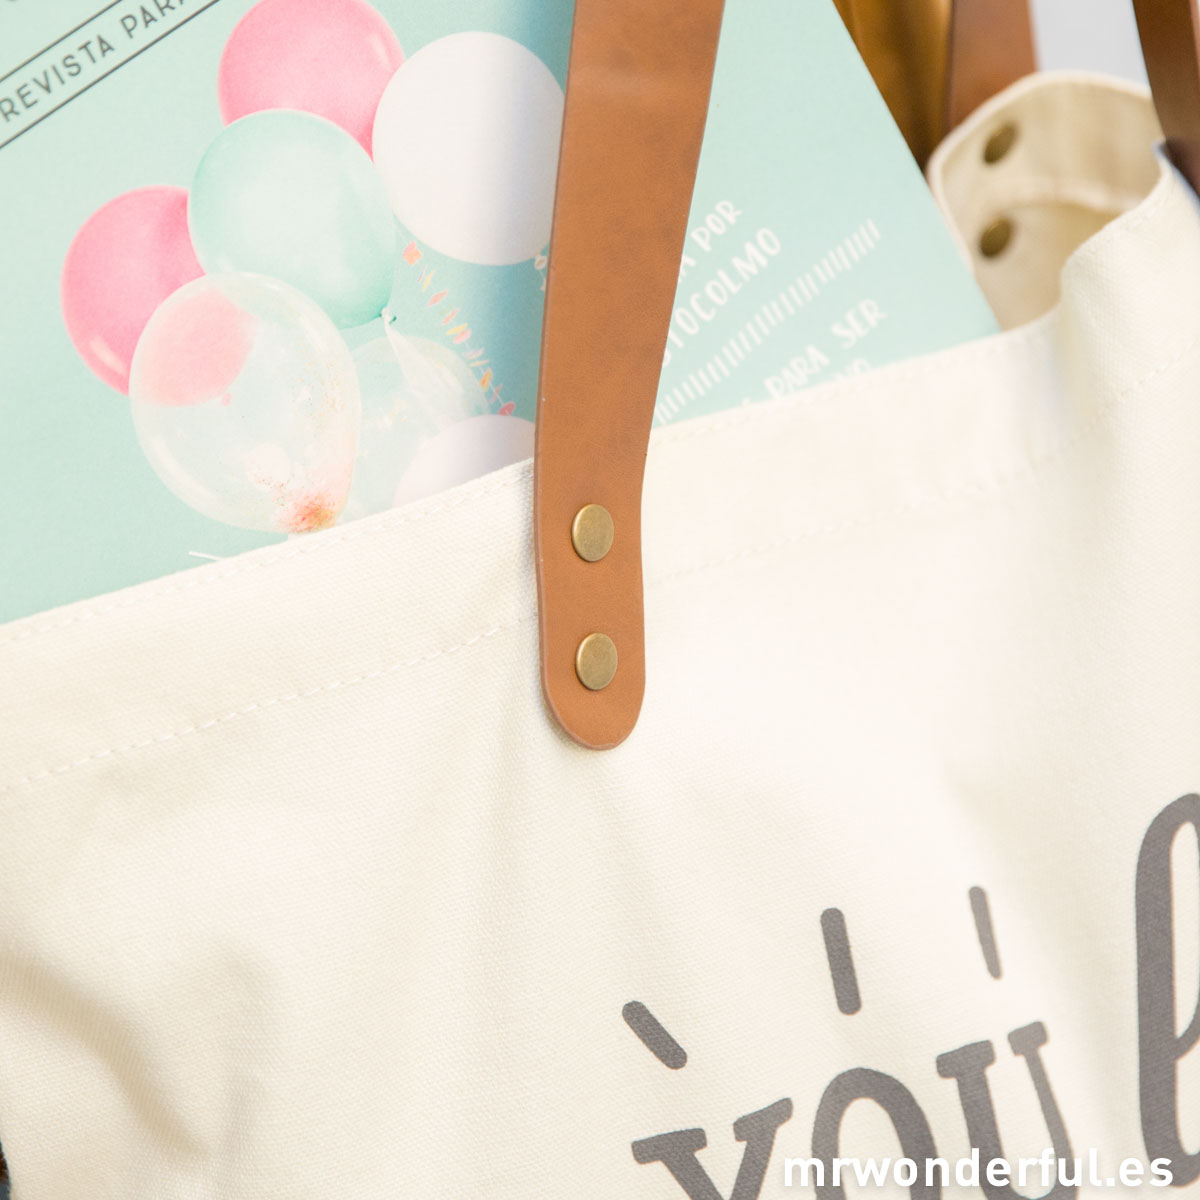 mrwonderful_totebag-you-look-wonderful-today-2015-11